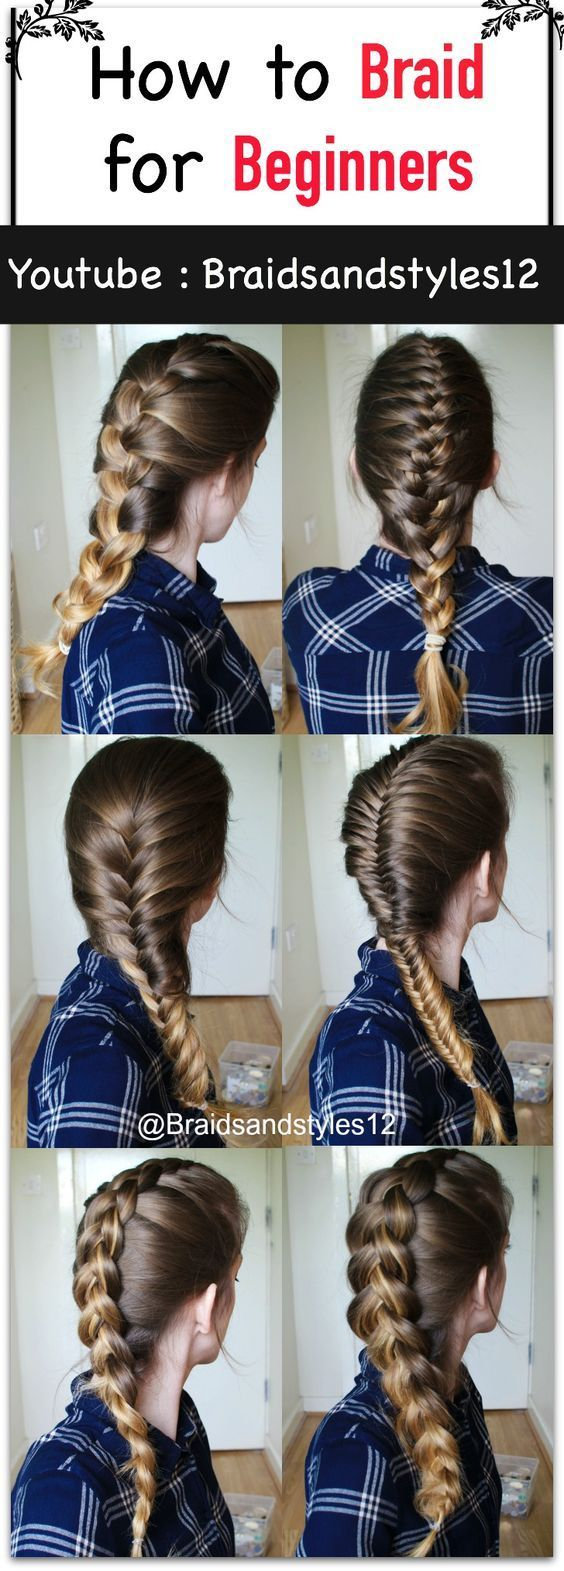 Makeup Ideas: 30 Best Braided Hairstyles That Turn Heads – Trend To Wear